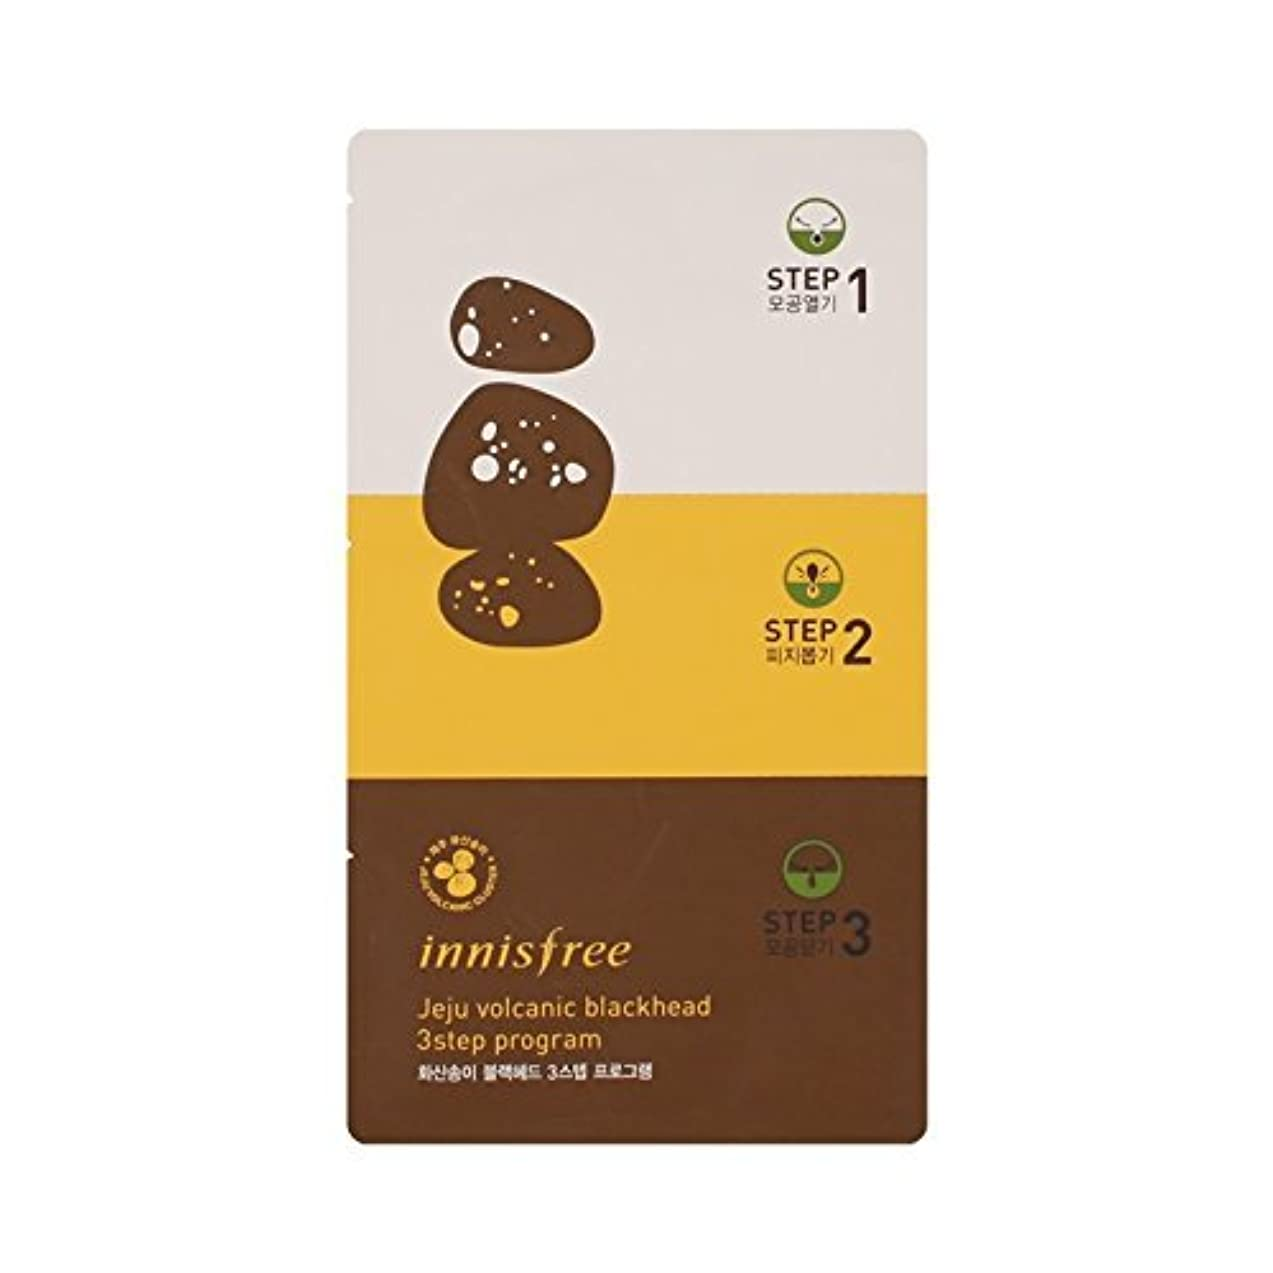 比較的ペンス申し込むBuy 1 Get 1 Innisfree Jeju Volcanic Blackhead 3step Program, korean cosmetics